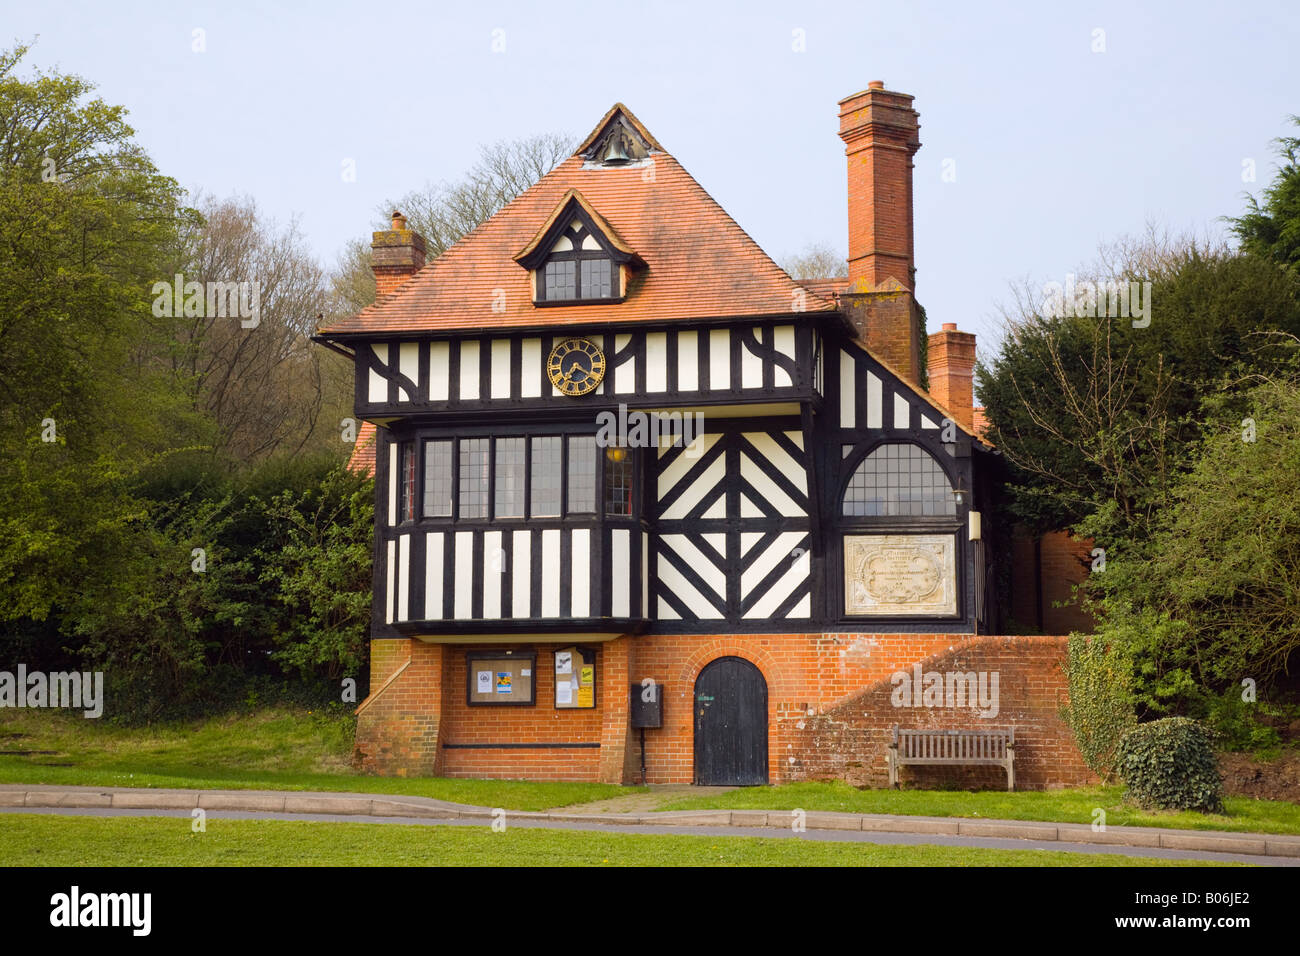 Tilford Surrey England UK Tilford Institute village hall and cricket pavilion building by Edwin Lutyens 1893 - Stock Image